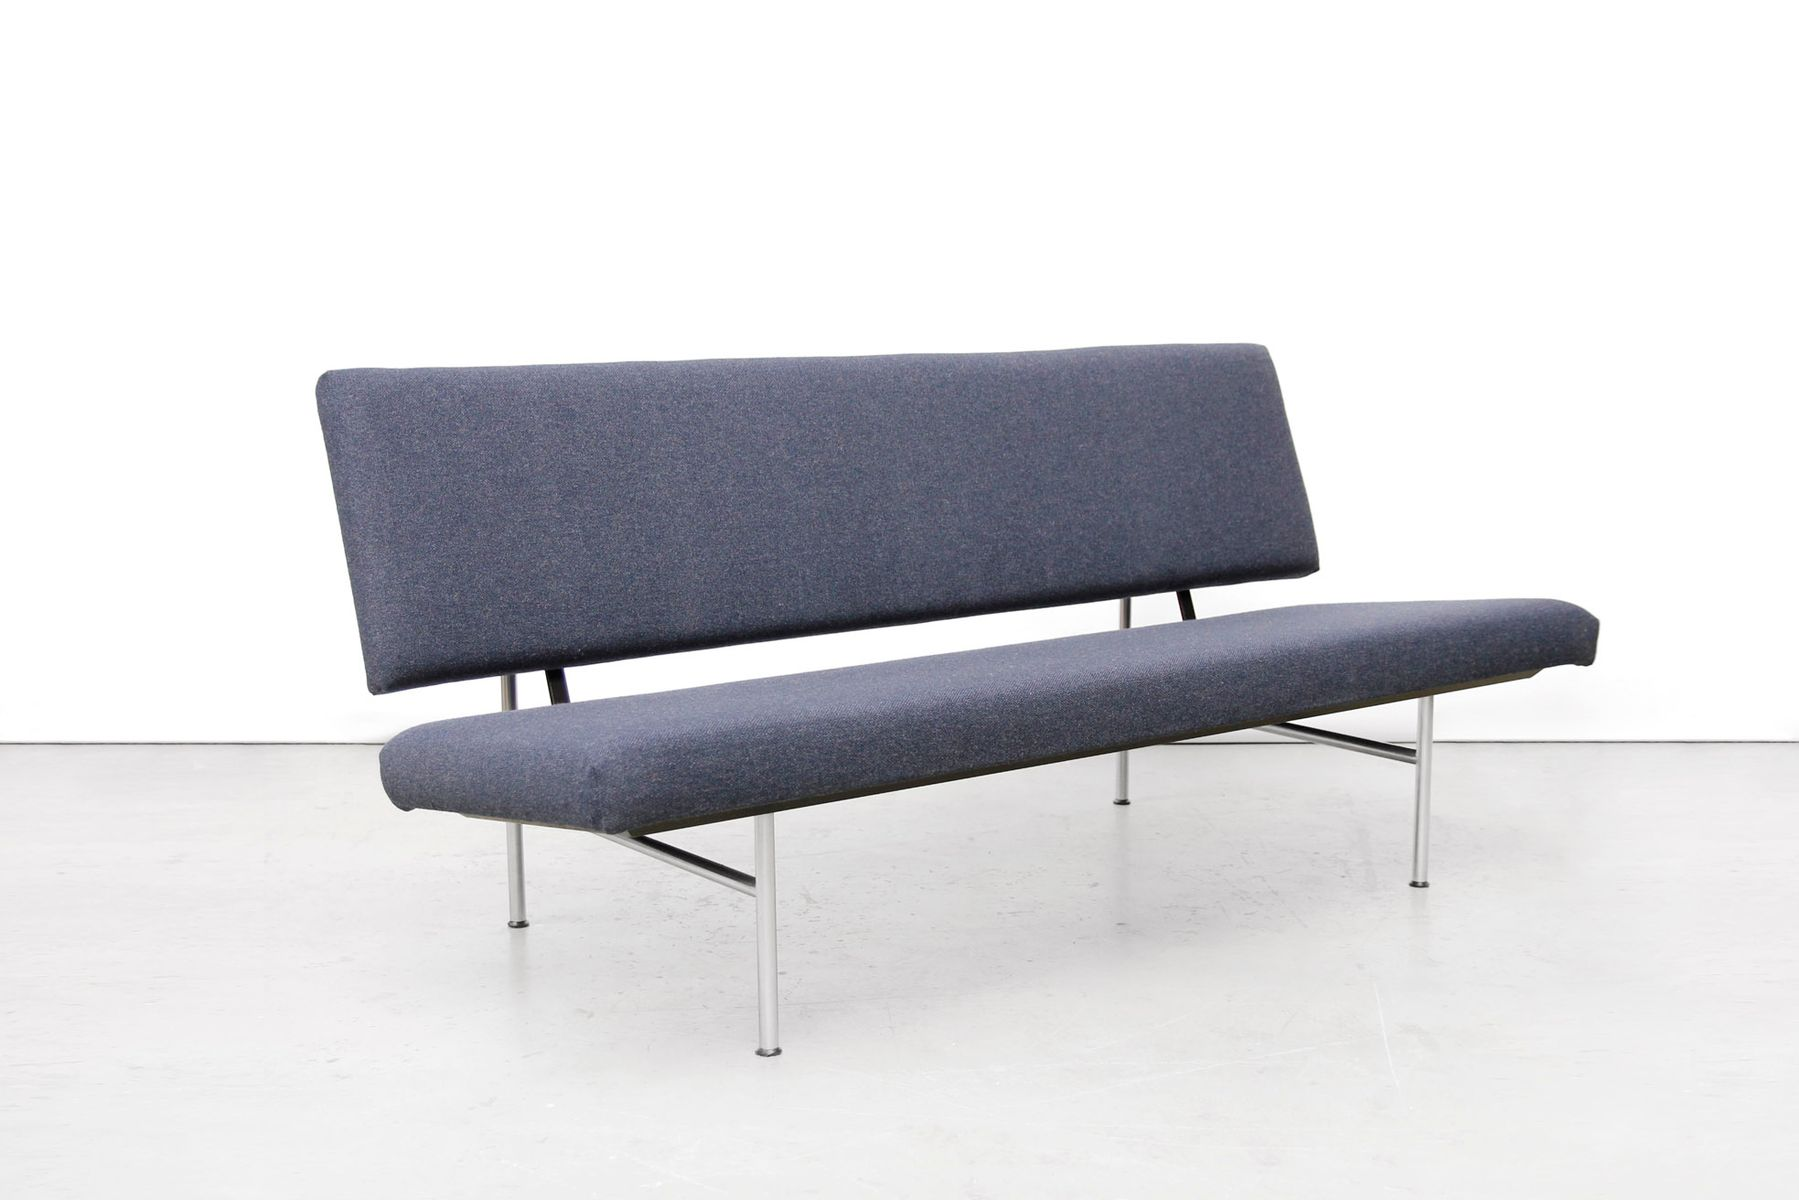 Model 1720 industrial sofa by a r cordemeijer for gispen for Sofa industrial